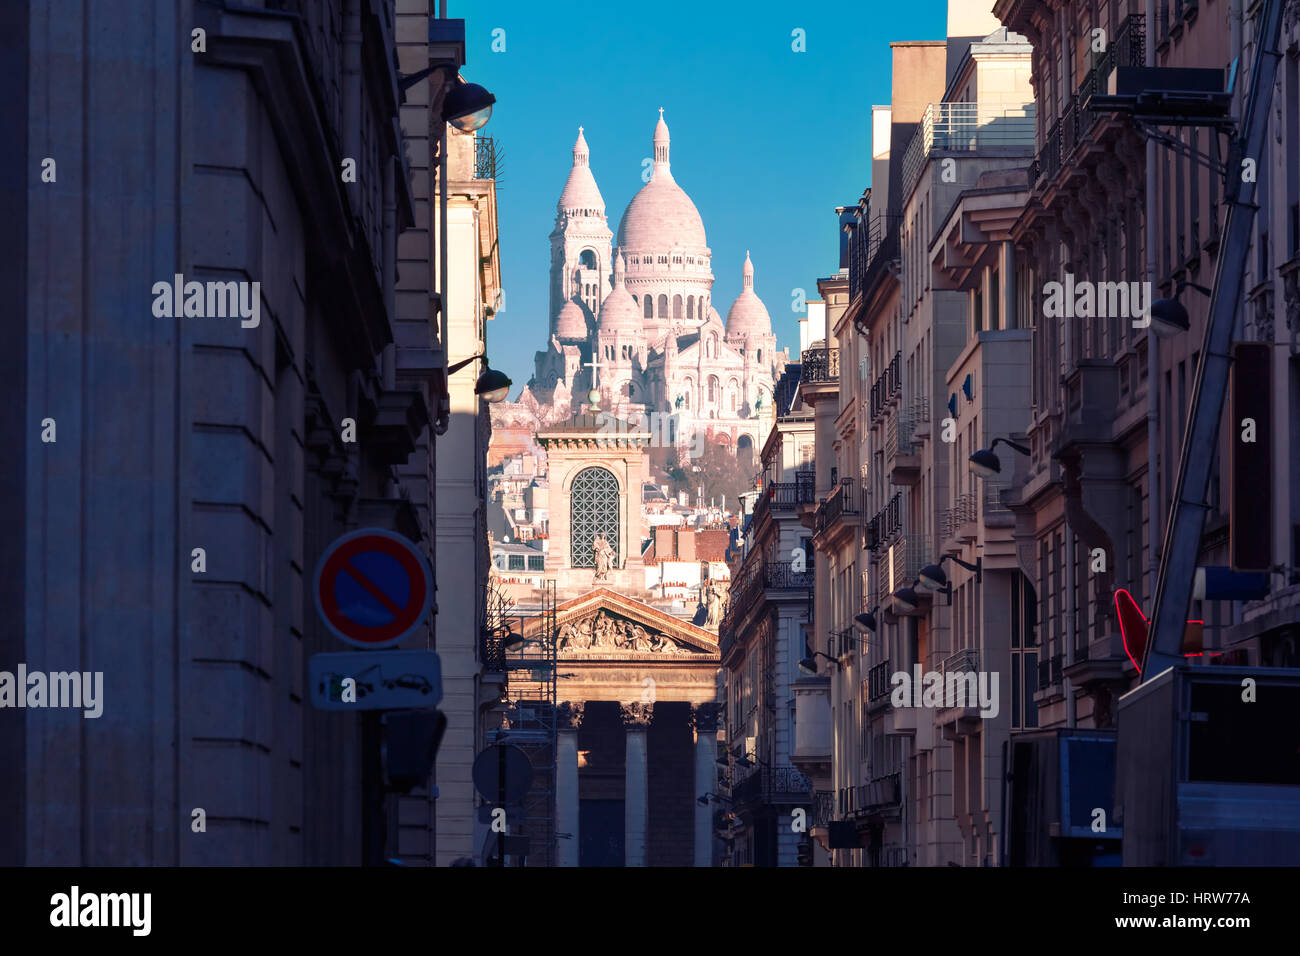 Sacre-Coeur Basilica or Basilica of the Sacred Heart of Jesus and Notre-Dame de Lorette church, seen from Rue Laffitte - Stock Image